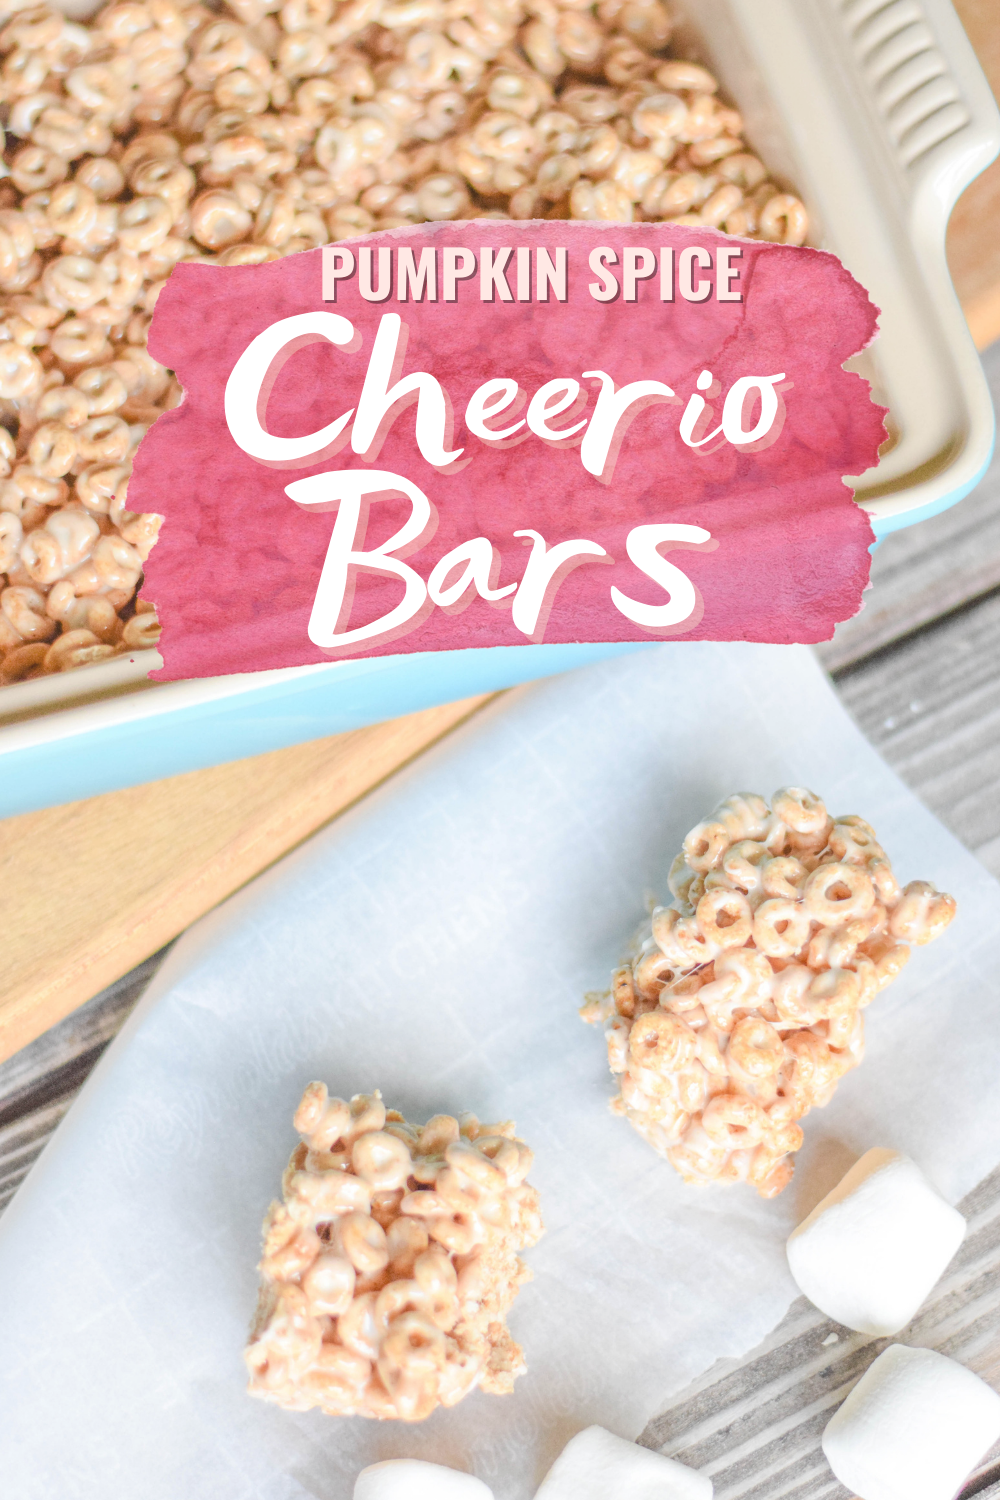 Pumpkin Spice Marshmallow Cheerio Bars - A delicious fall twist on the classic marshmallow treat using Pumpkin Spice Cheerios! | Marshmallow cereal bars - Cheerio Marshmallow Bars - Cheerio Bars - Cheerio treats - Cheerio bars recipe